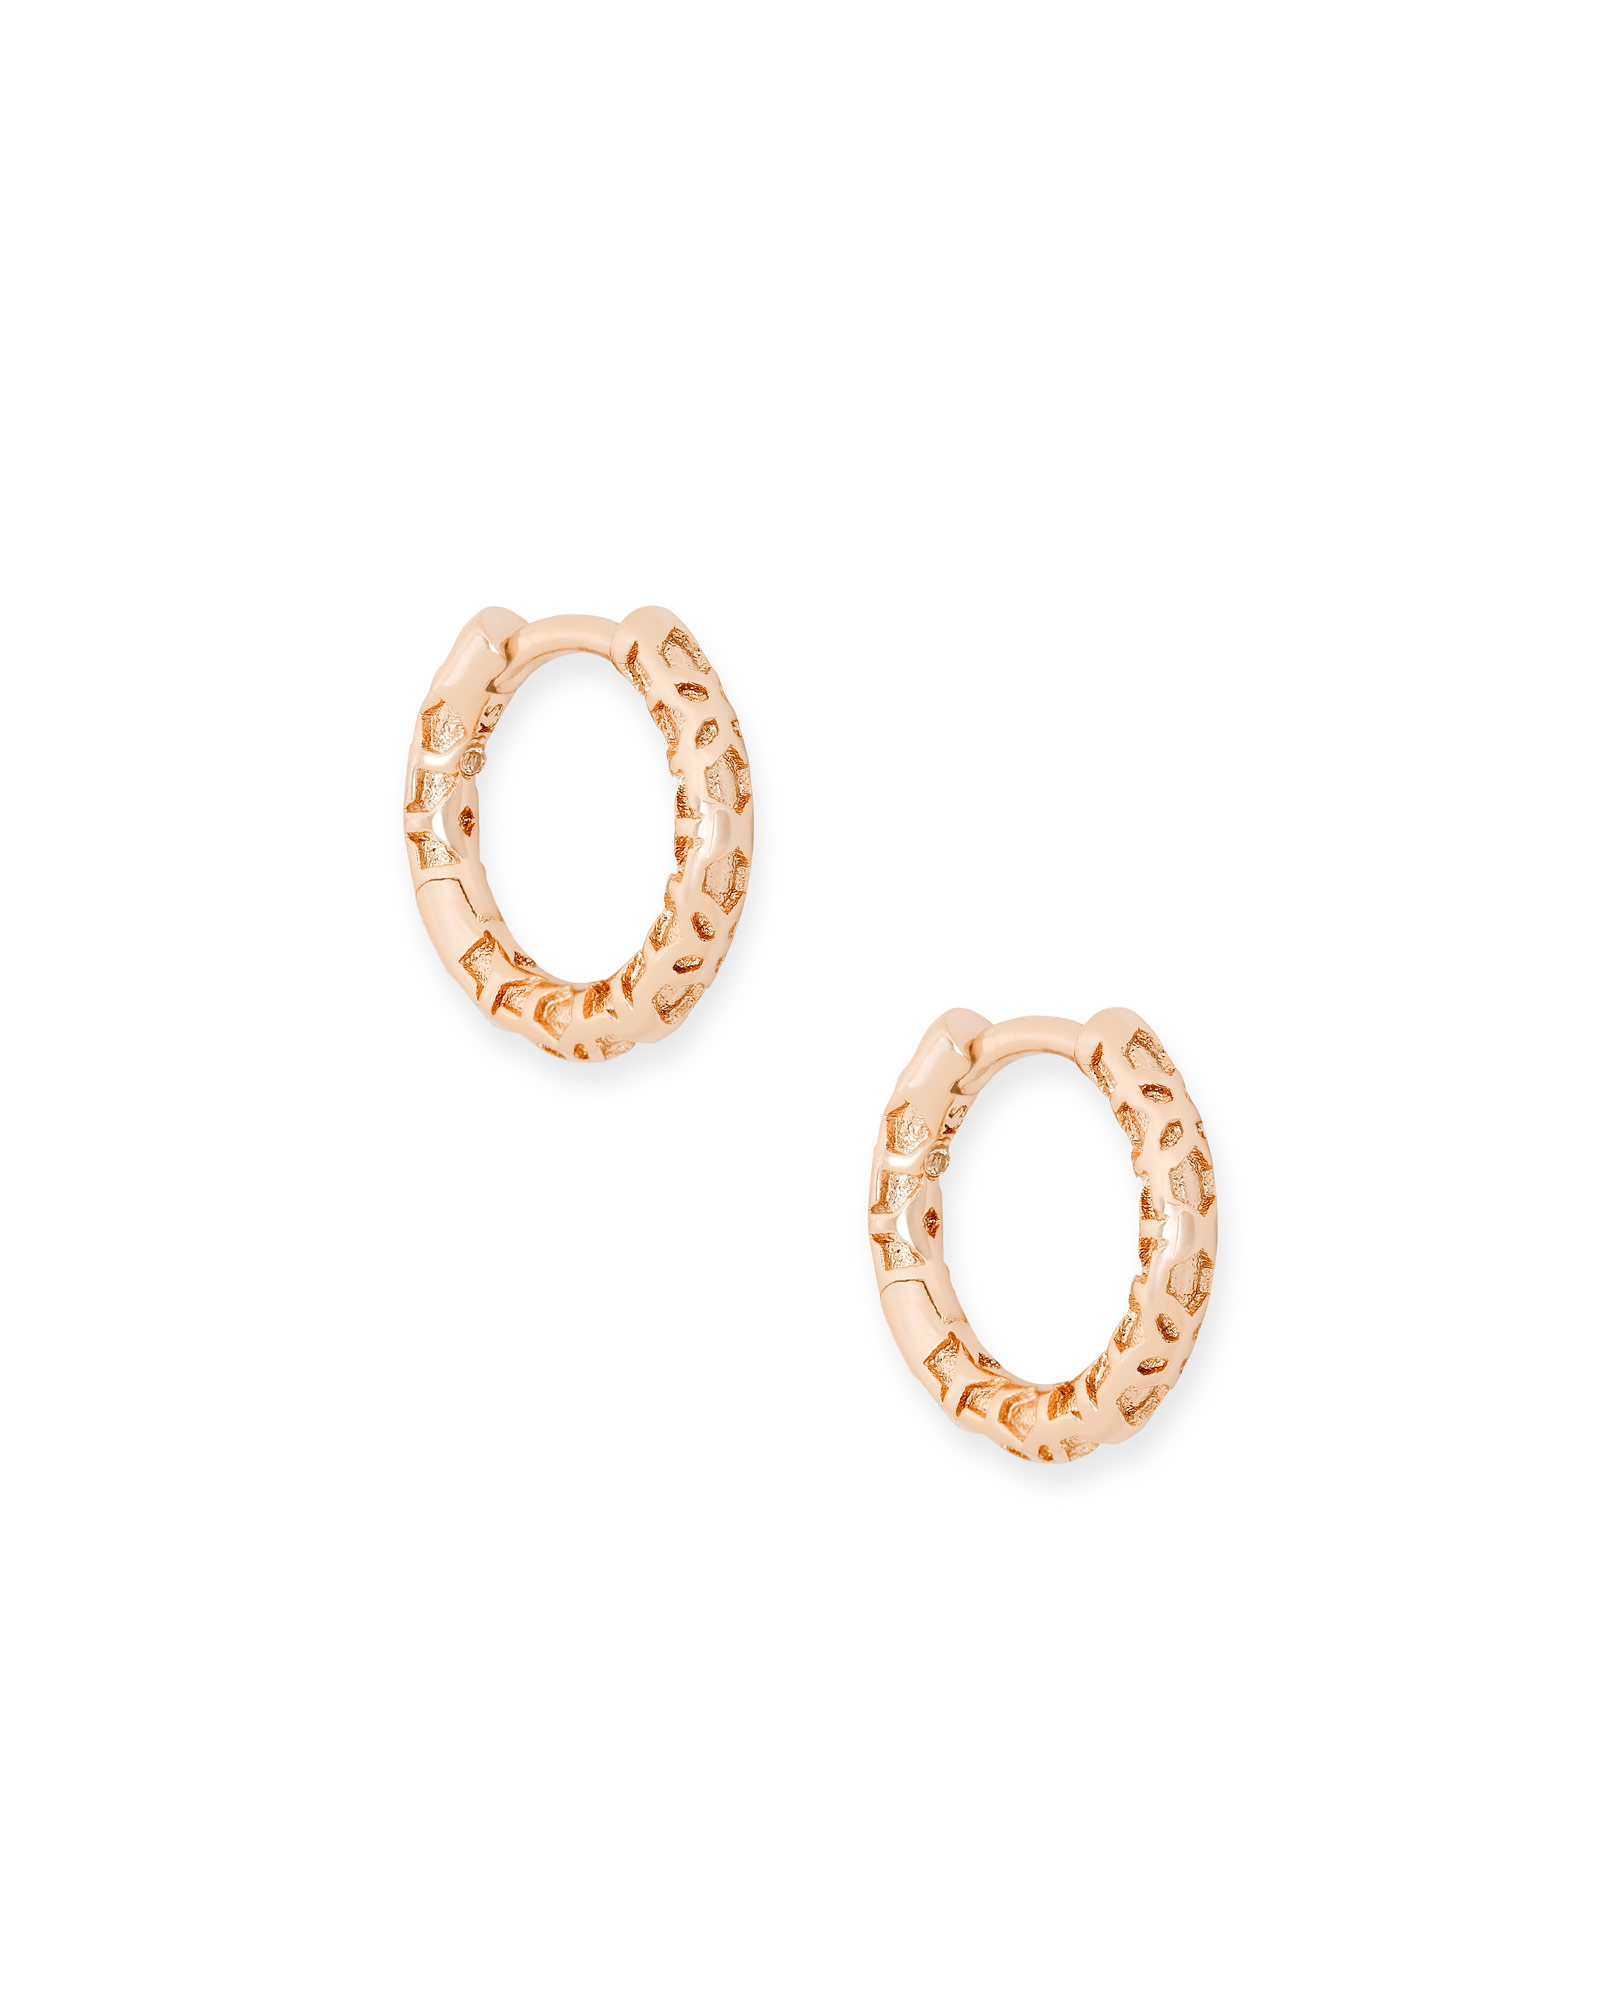 Maggie Huggie Earrings in Rose Gold Filigree